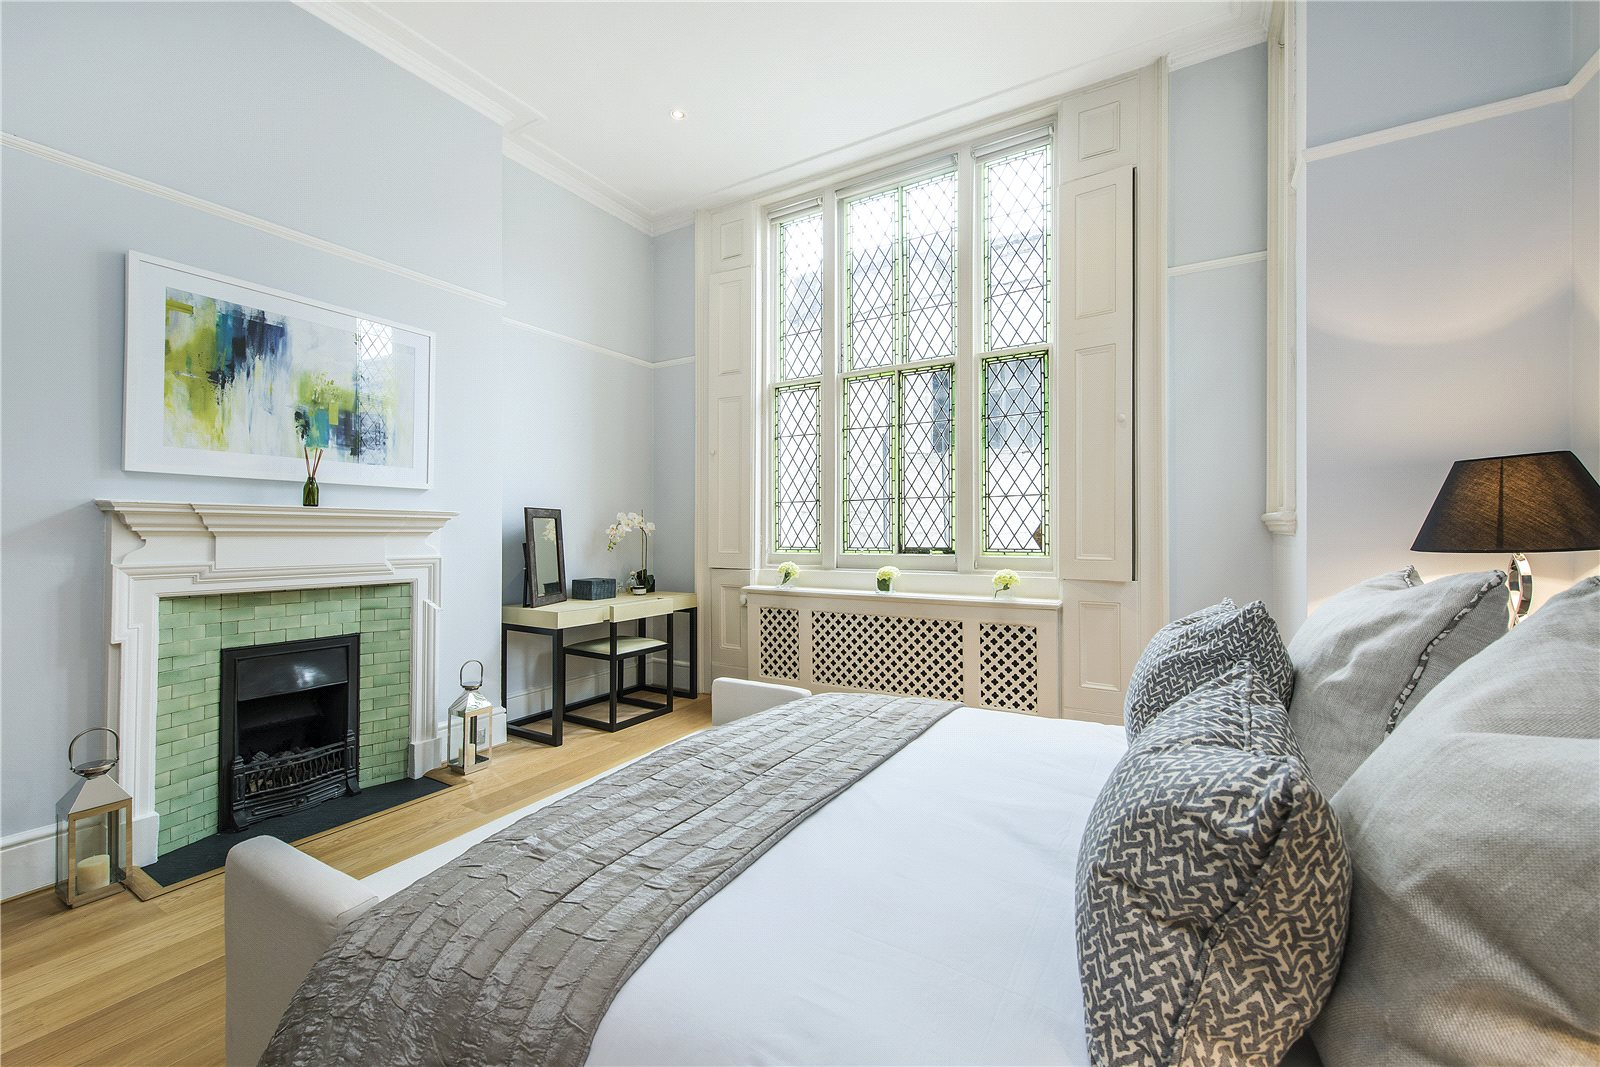 Additional photo for property listing at Cornwall Gardens, South Kensington, London, SW7 South Kensington, London, Engeland